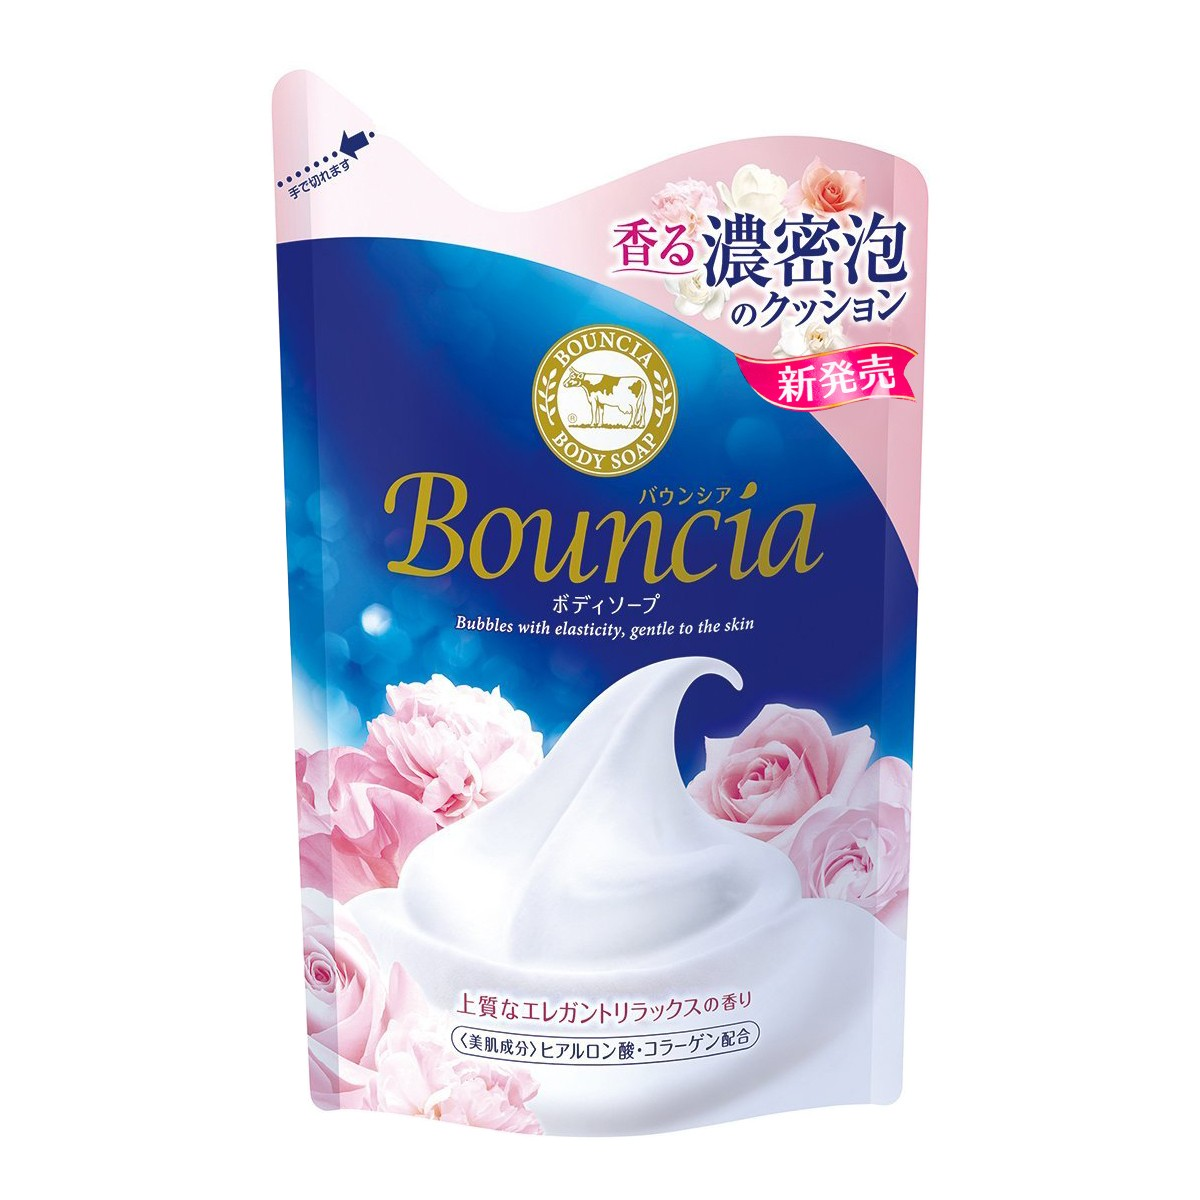 COW Bouncia Rose Body Soap Refill 430ml